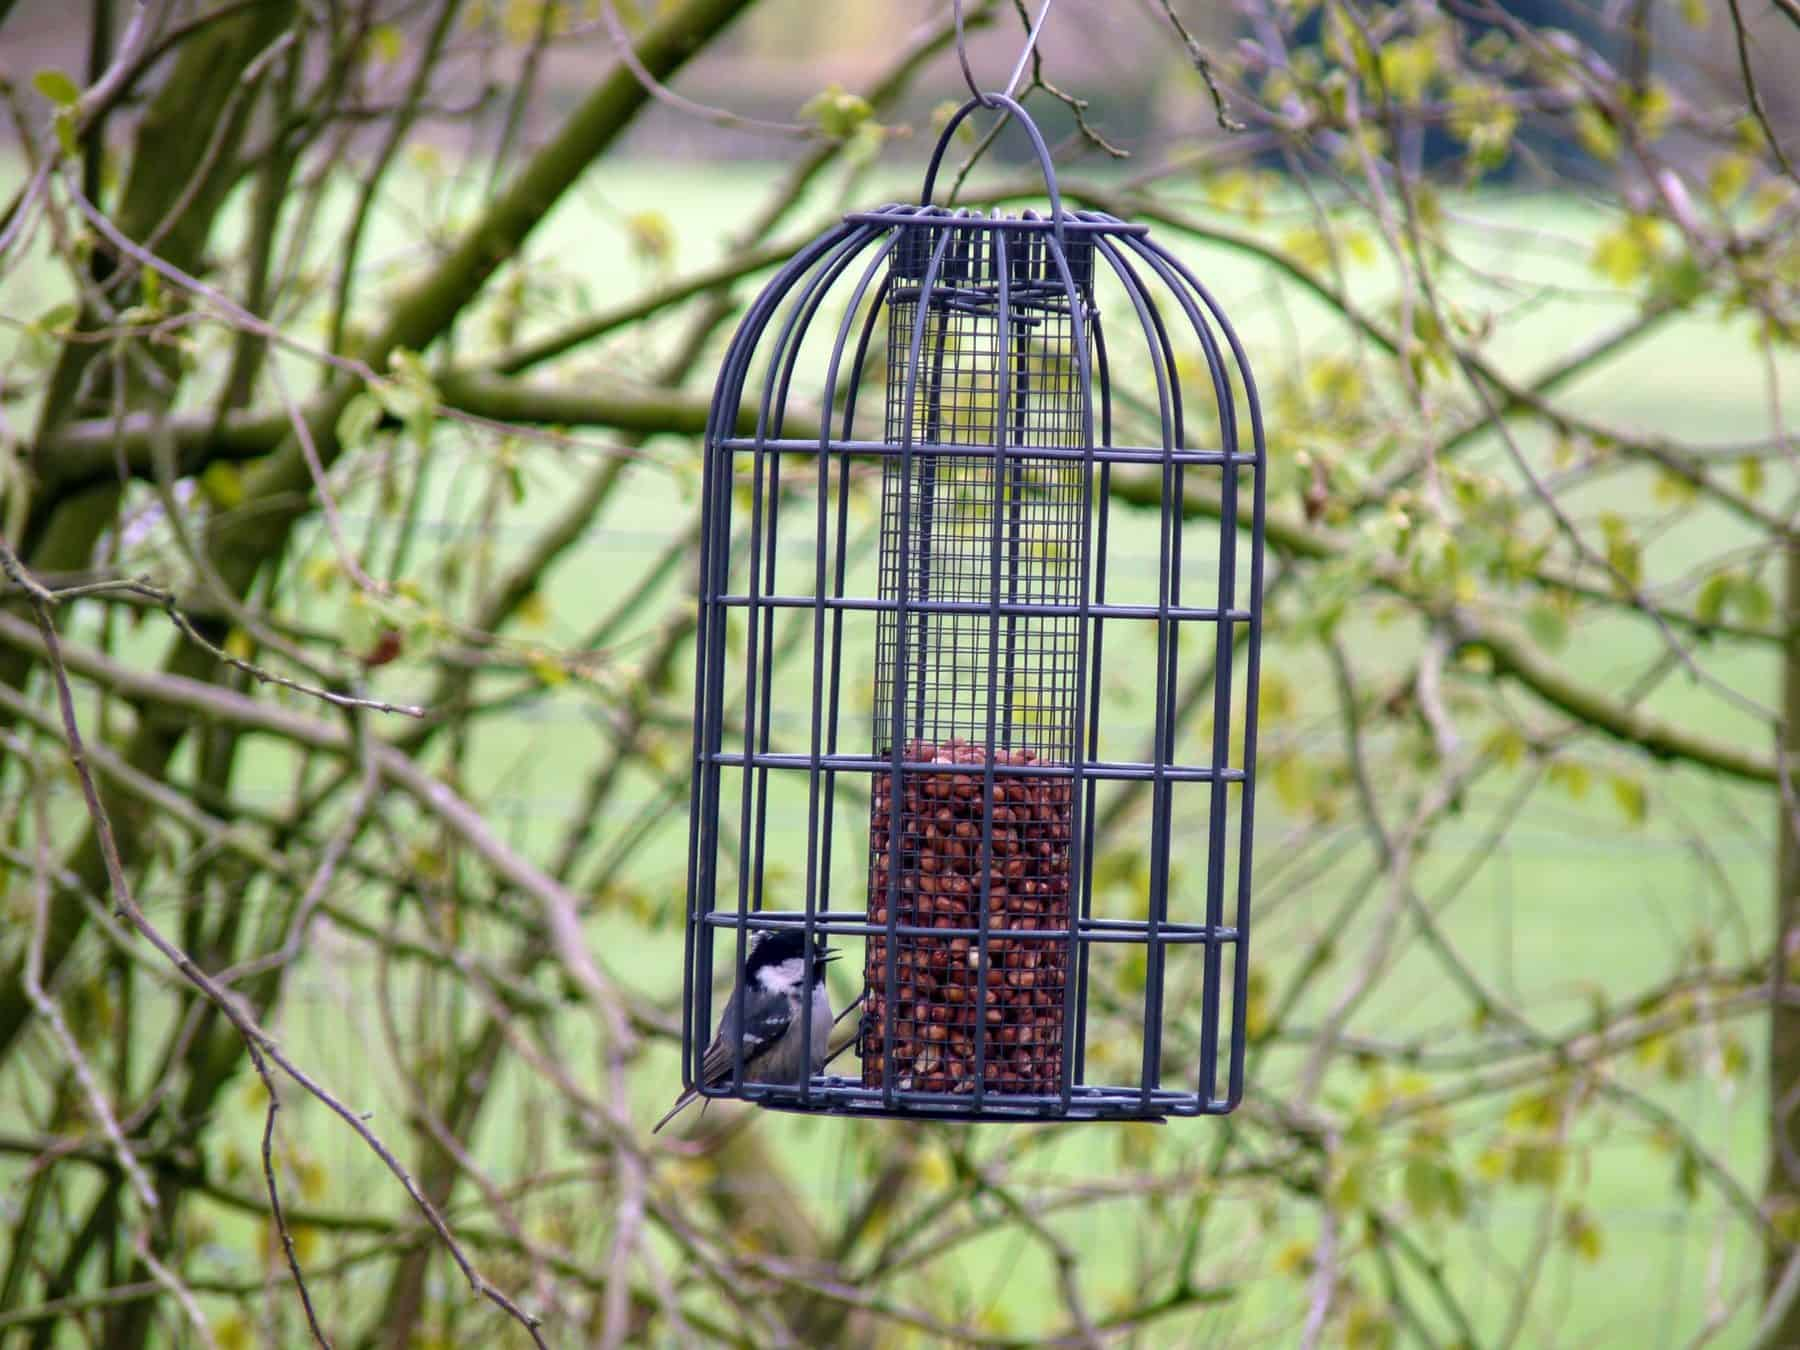 Get back to nature this spring Birdwatching from your garden shed room